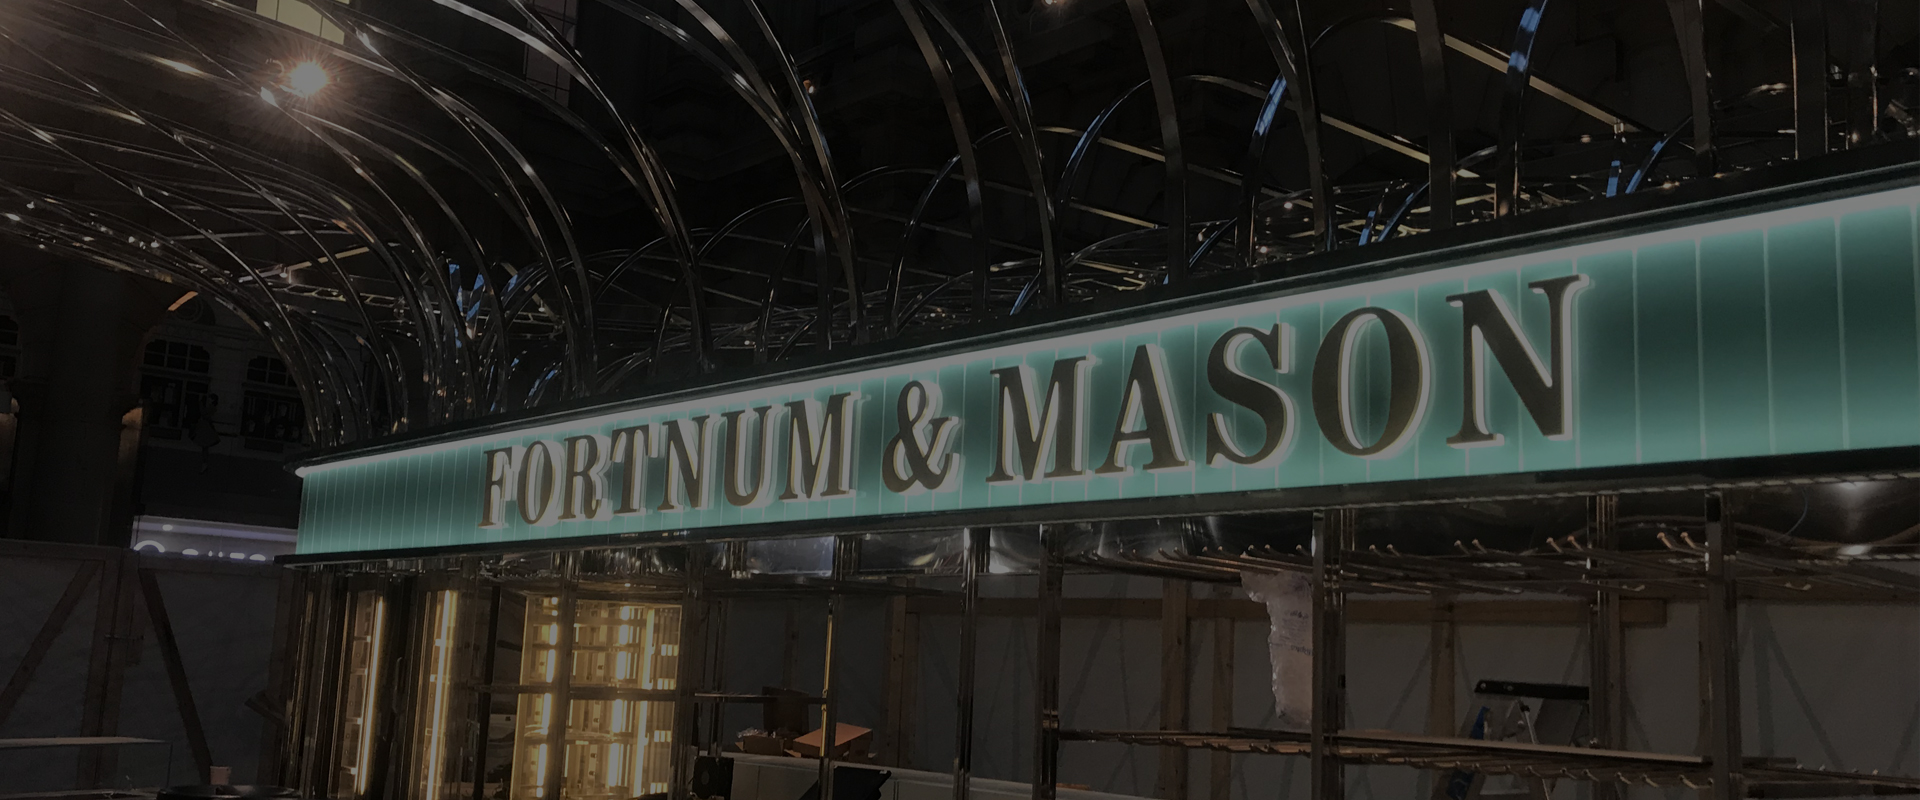 fortnum & mason internal illuminated signage